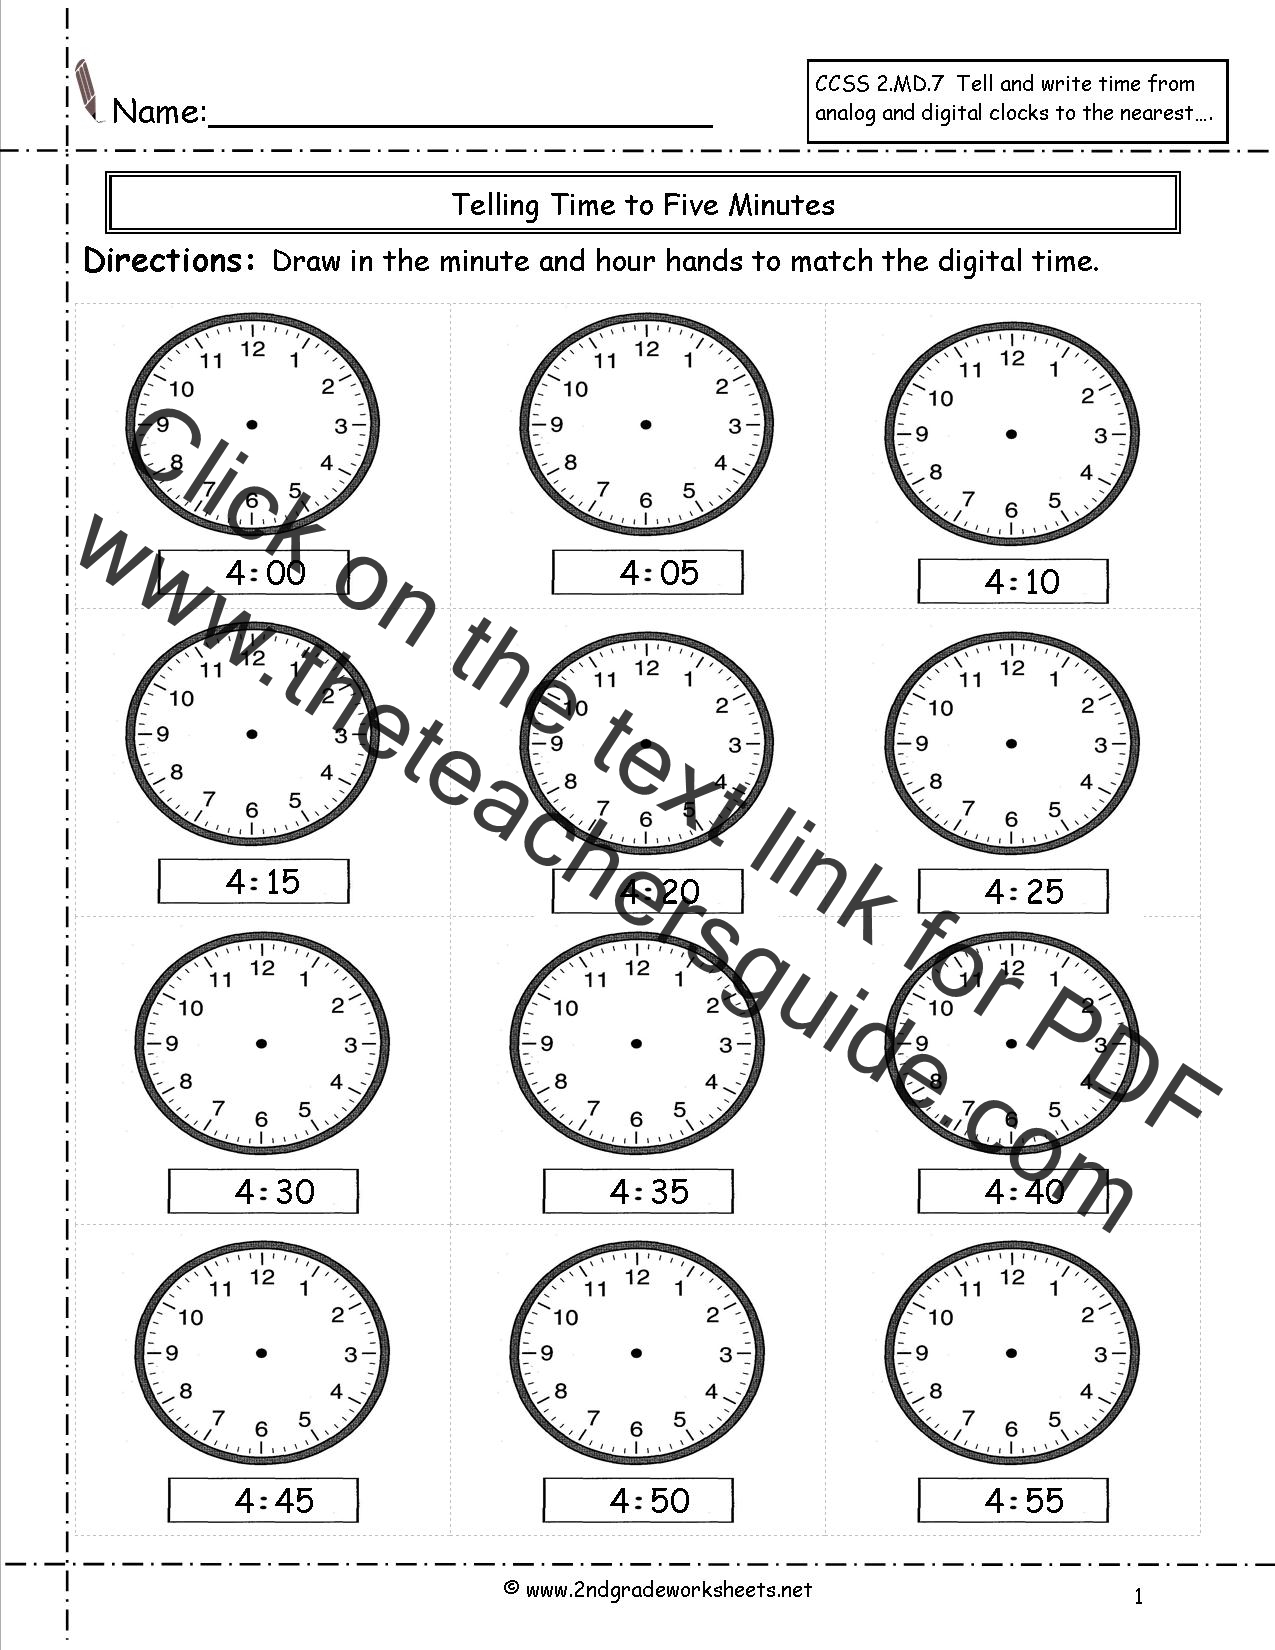 worksheet Telling Time To The Quarter Hour Worksheets ccss 2 md 7 worksheets telling time to five minutes worksheets